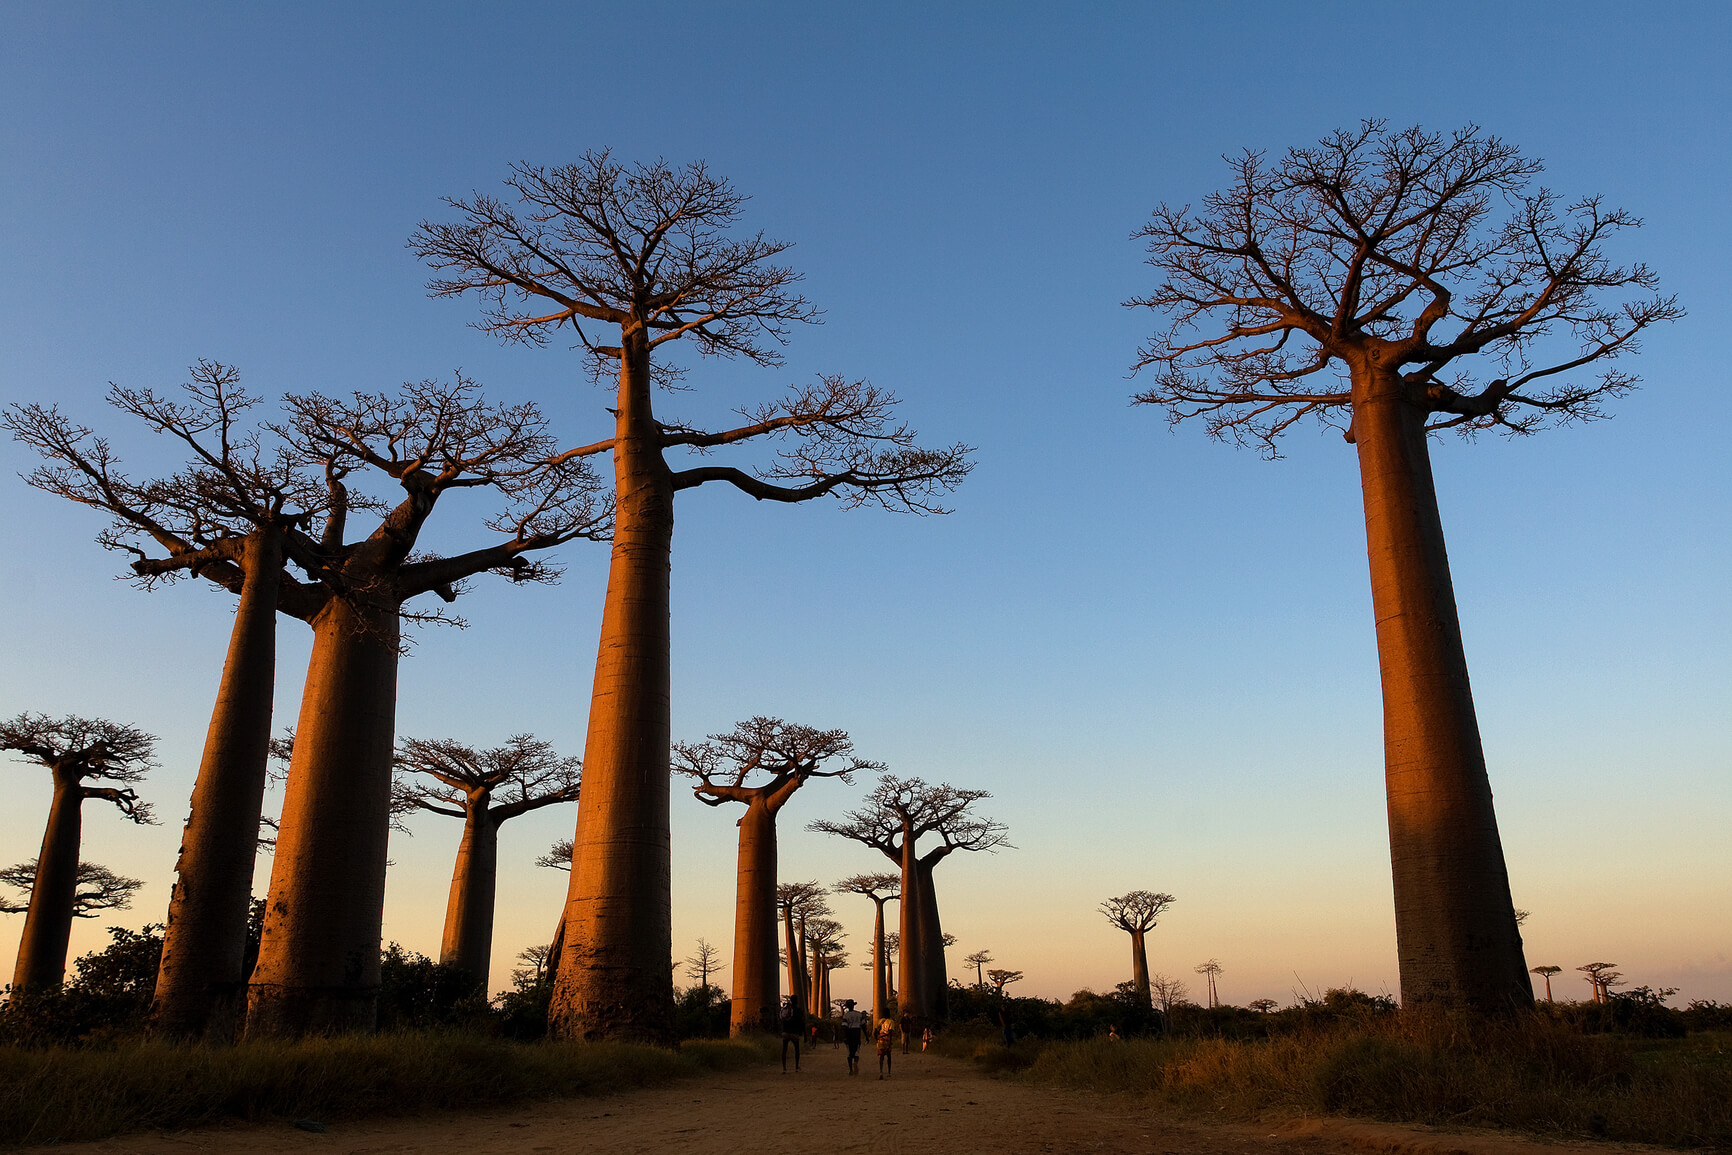 London, UK to Madagascar for only £477 roundtrip (Sep-Oct dates)